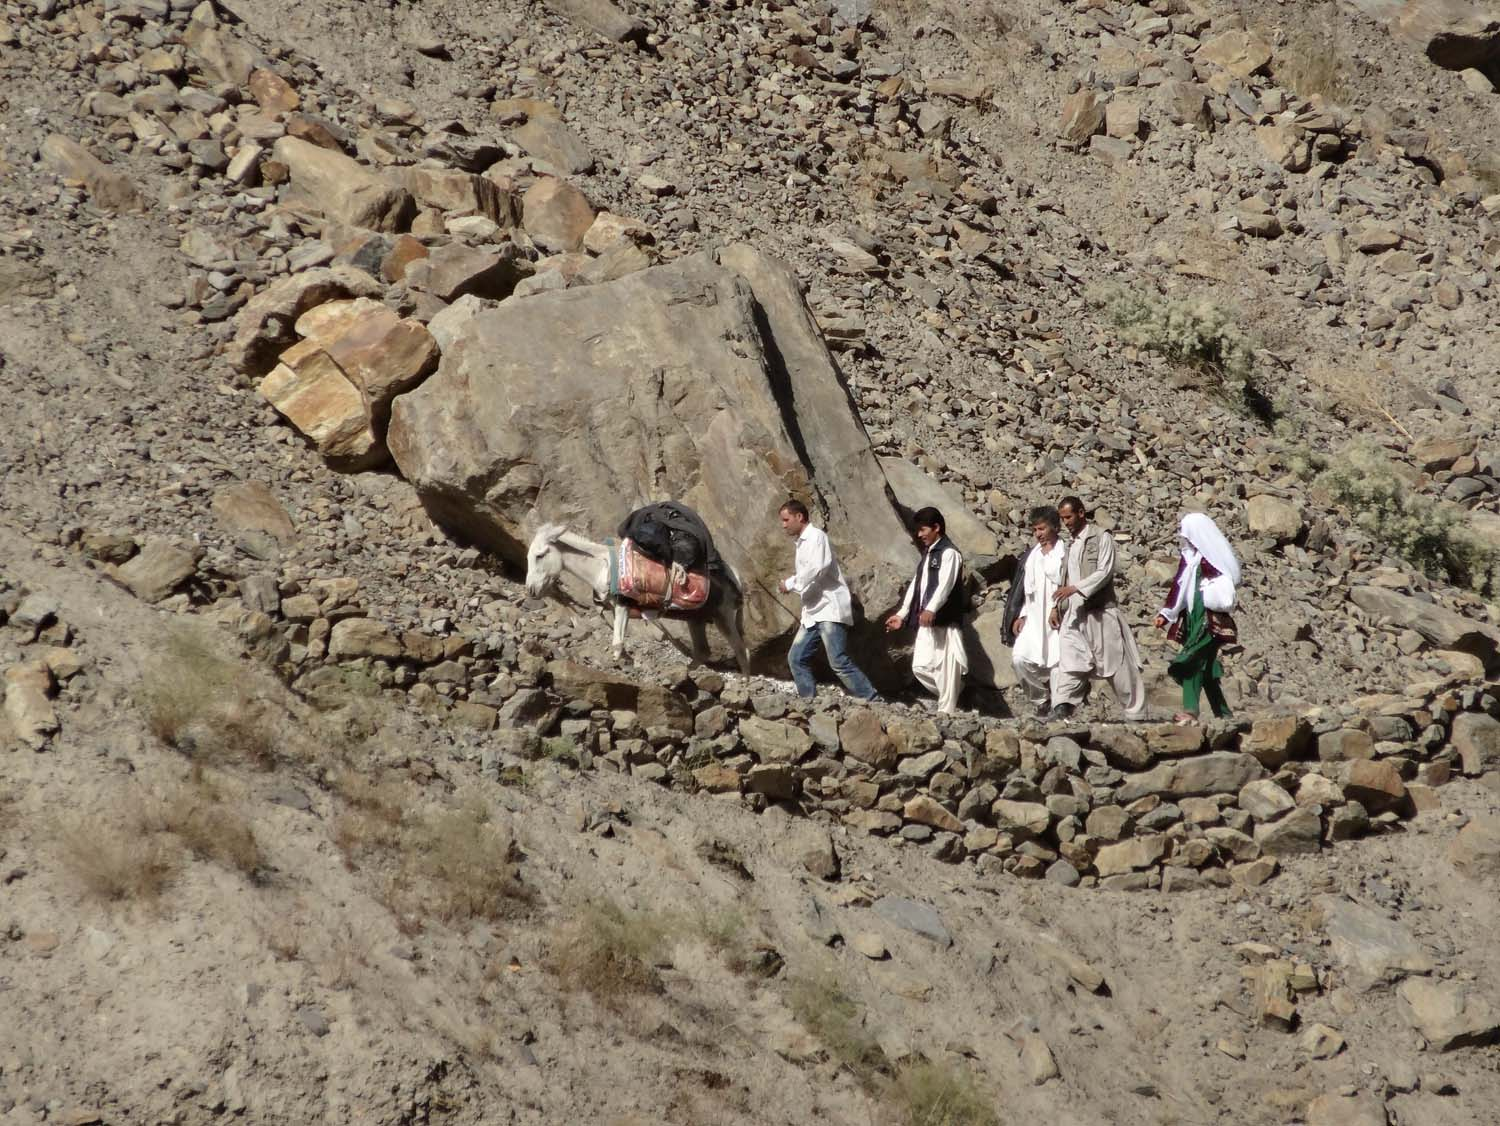 Afghans walking on the amazing trail, often hacked out in the rocks